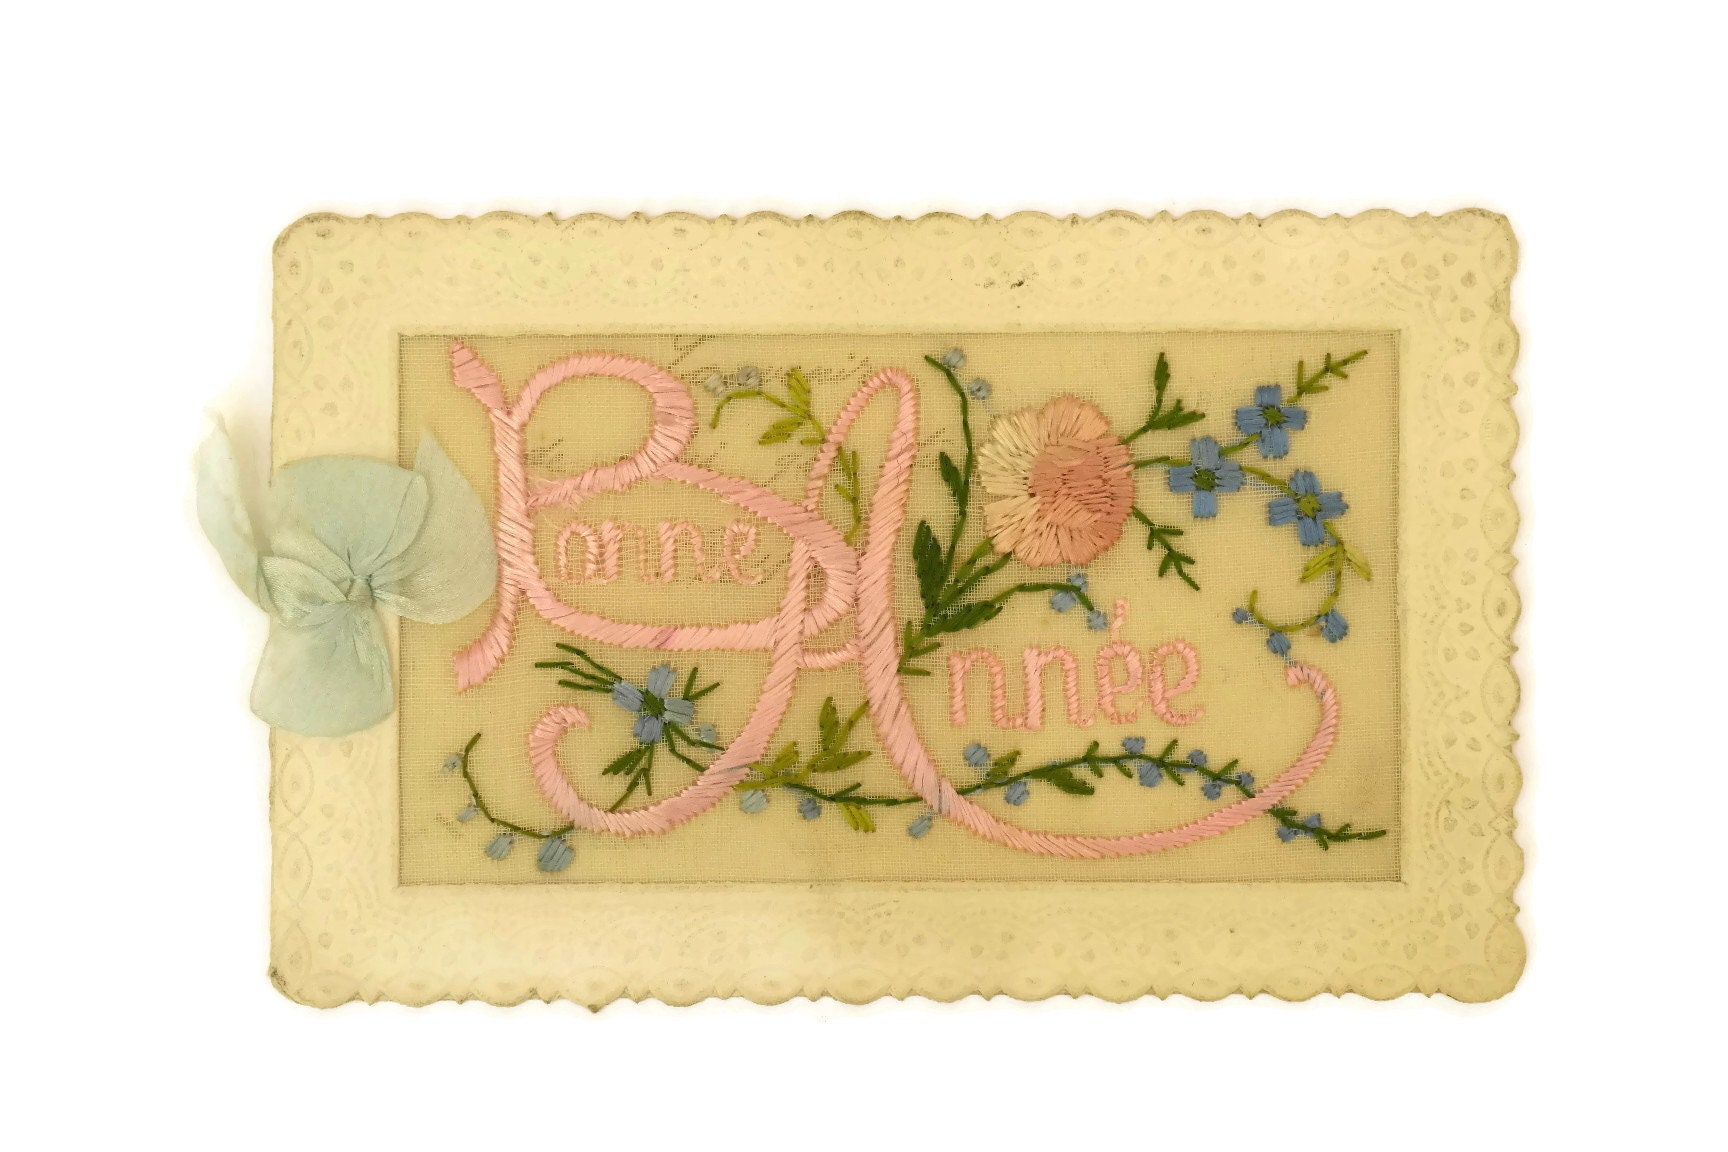 Antique French Embroidered Flower Greeting Card Bonne Annee Card